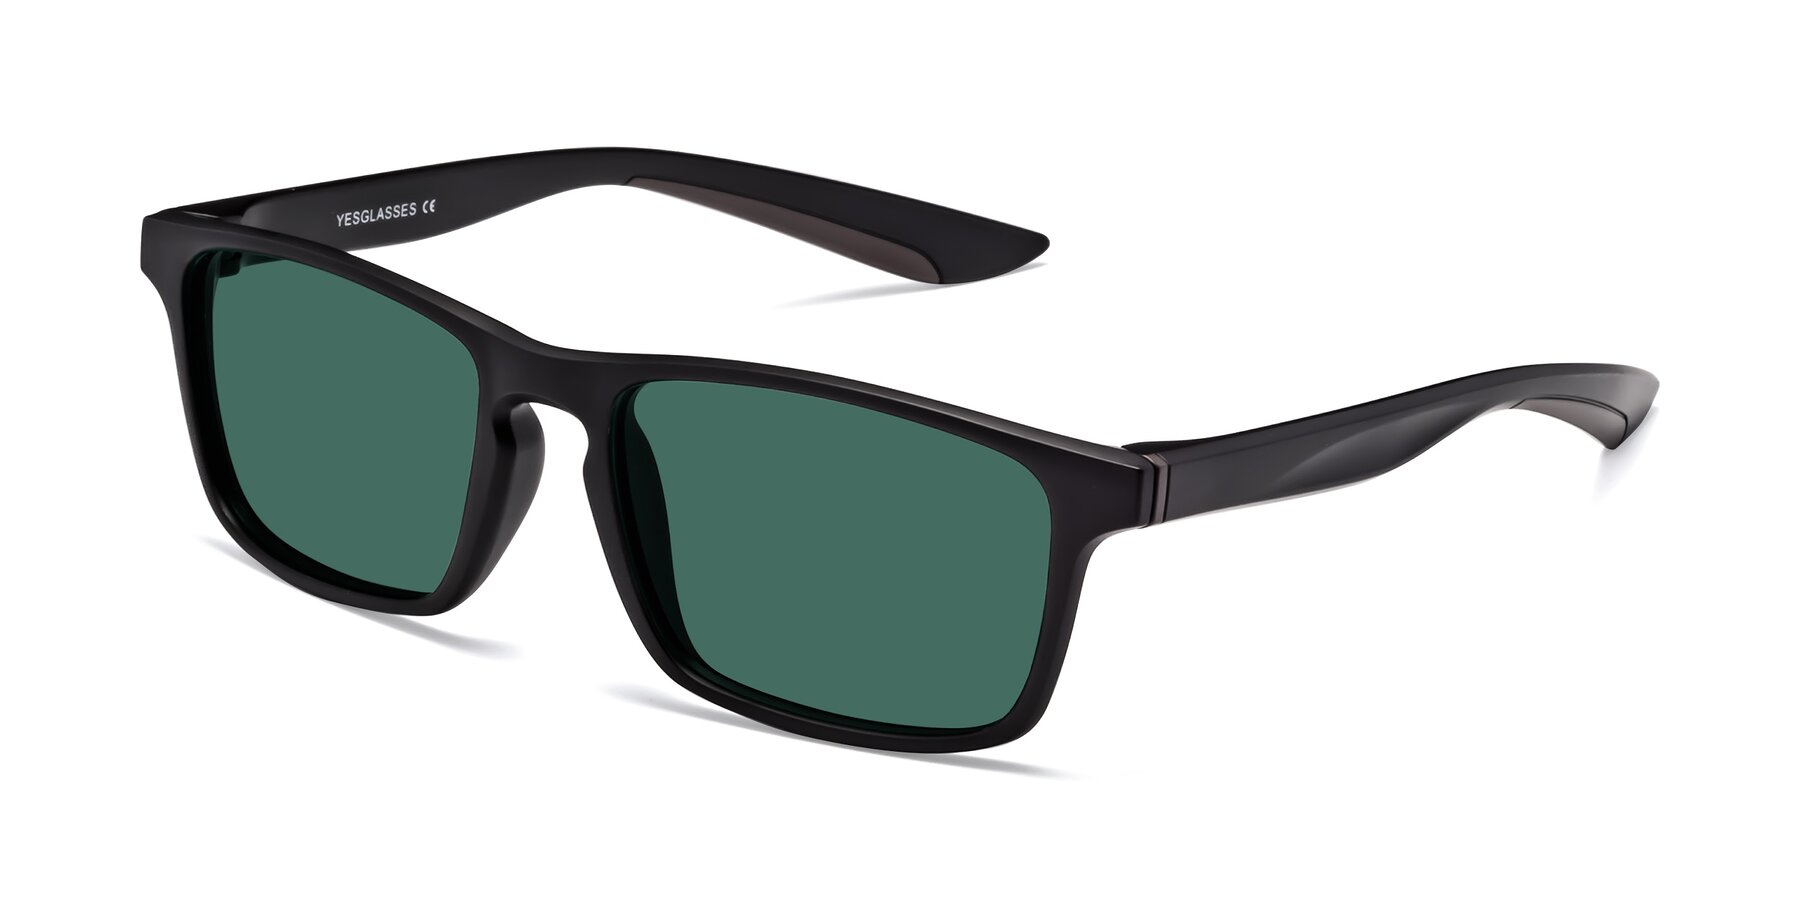 Angle of Passion in Matte Black-Coffee with Green Polarized Lenses